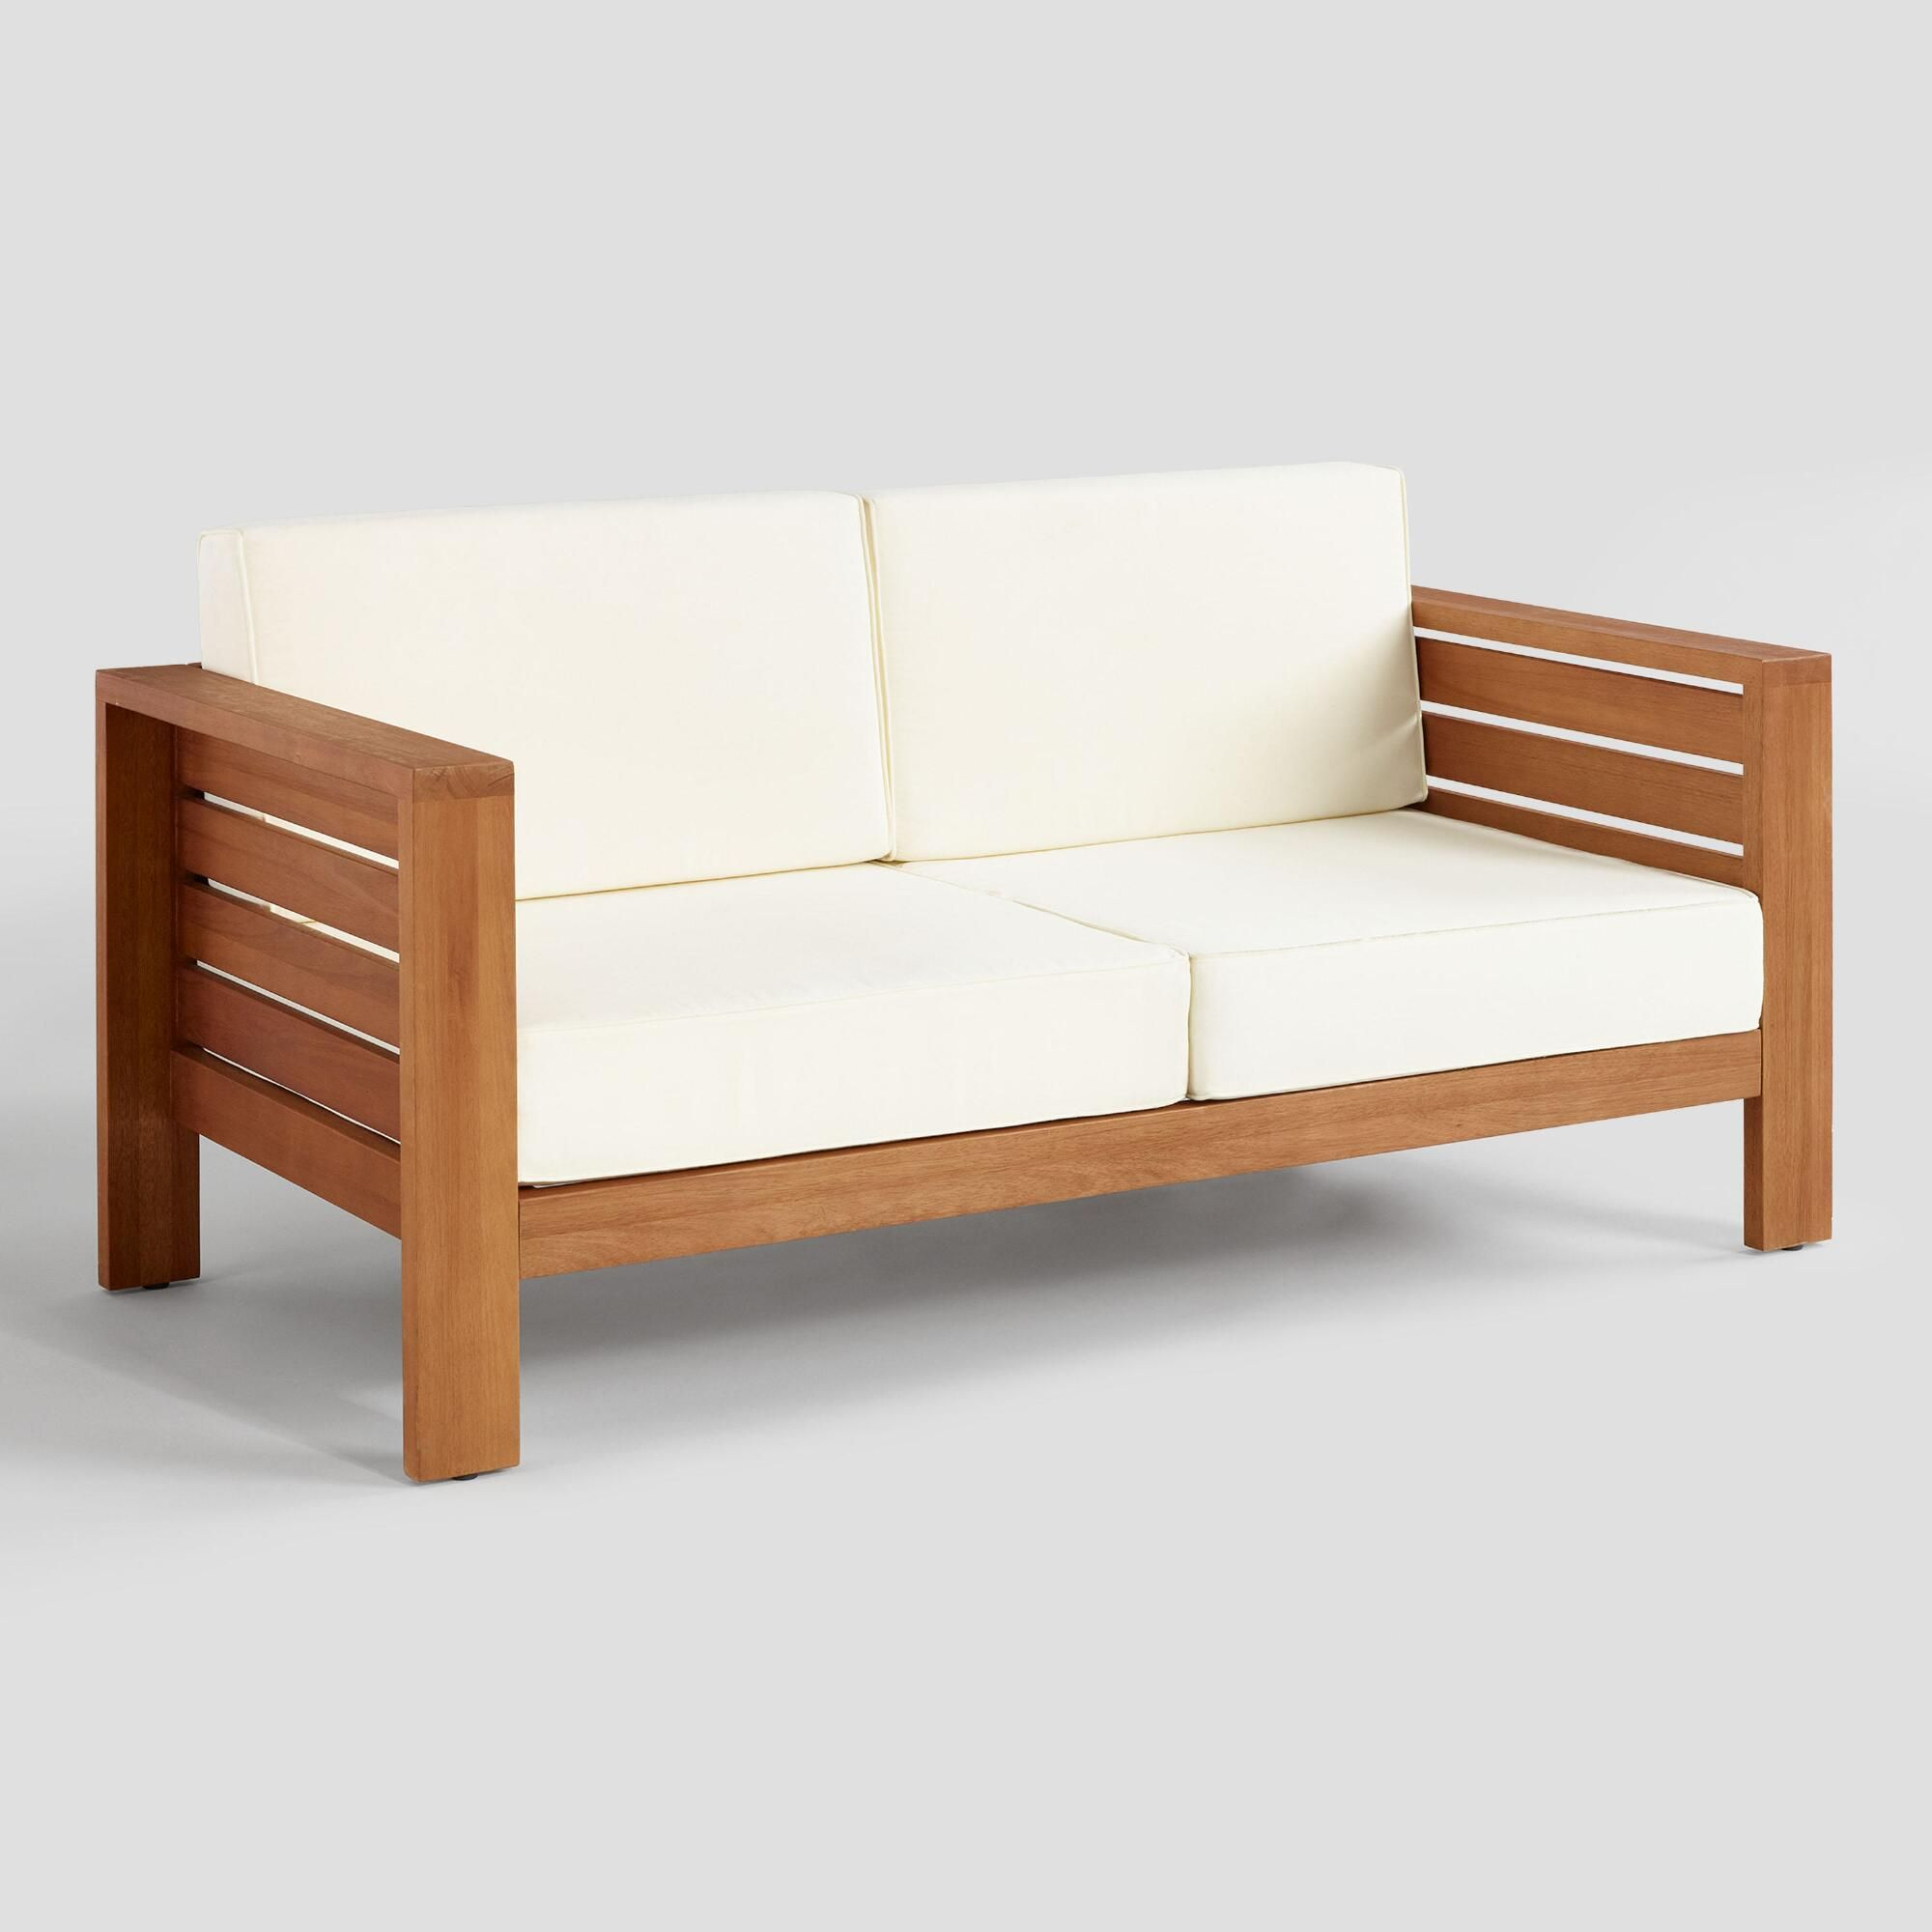 Wood Formentera Outdoor Patio Occasional Bench By World Market Wooden Sofa Designs Wooden Bench Outdoor Wooden Sofa